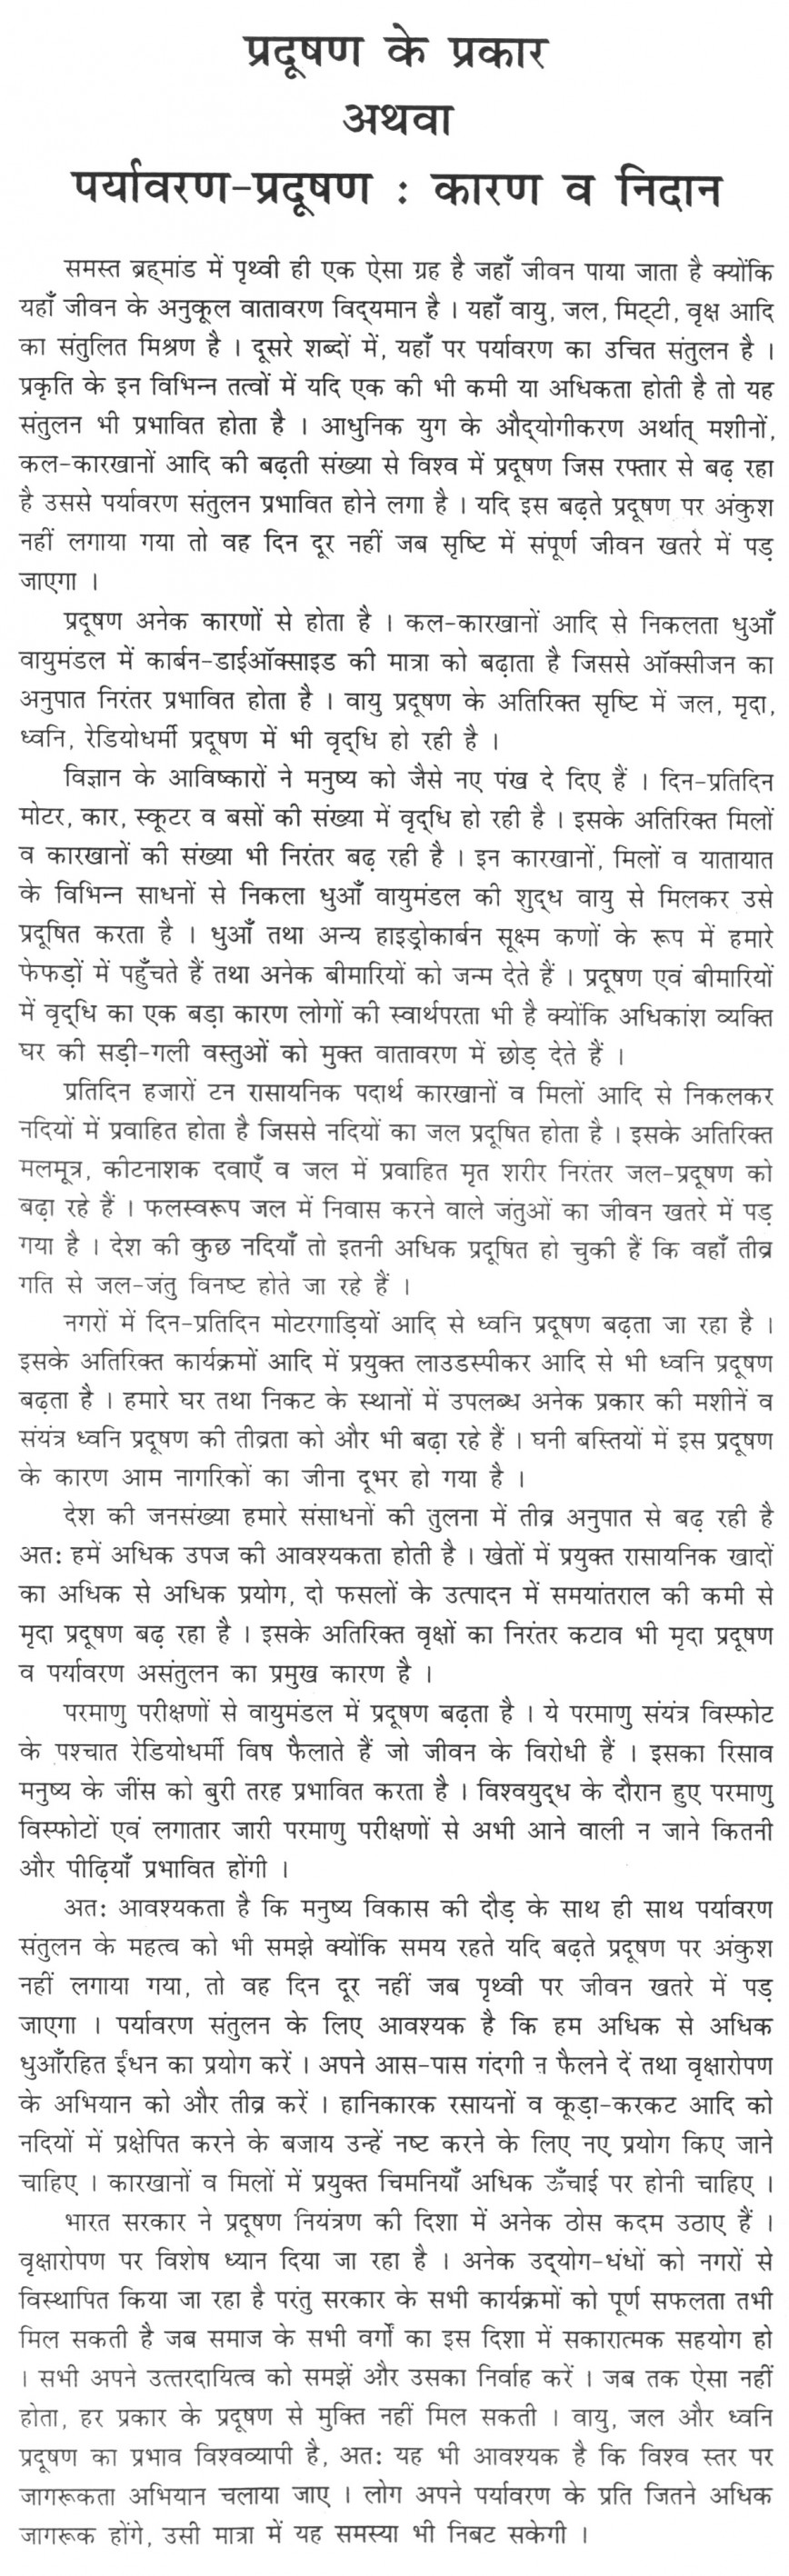 014 Good Habits Essay In Hindi Exceptional Habit Wikipedia Eating 868